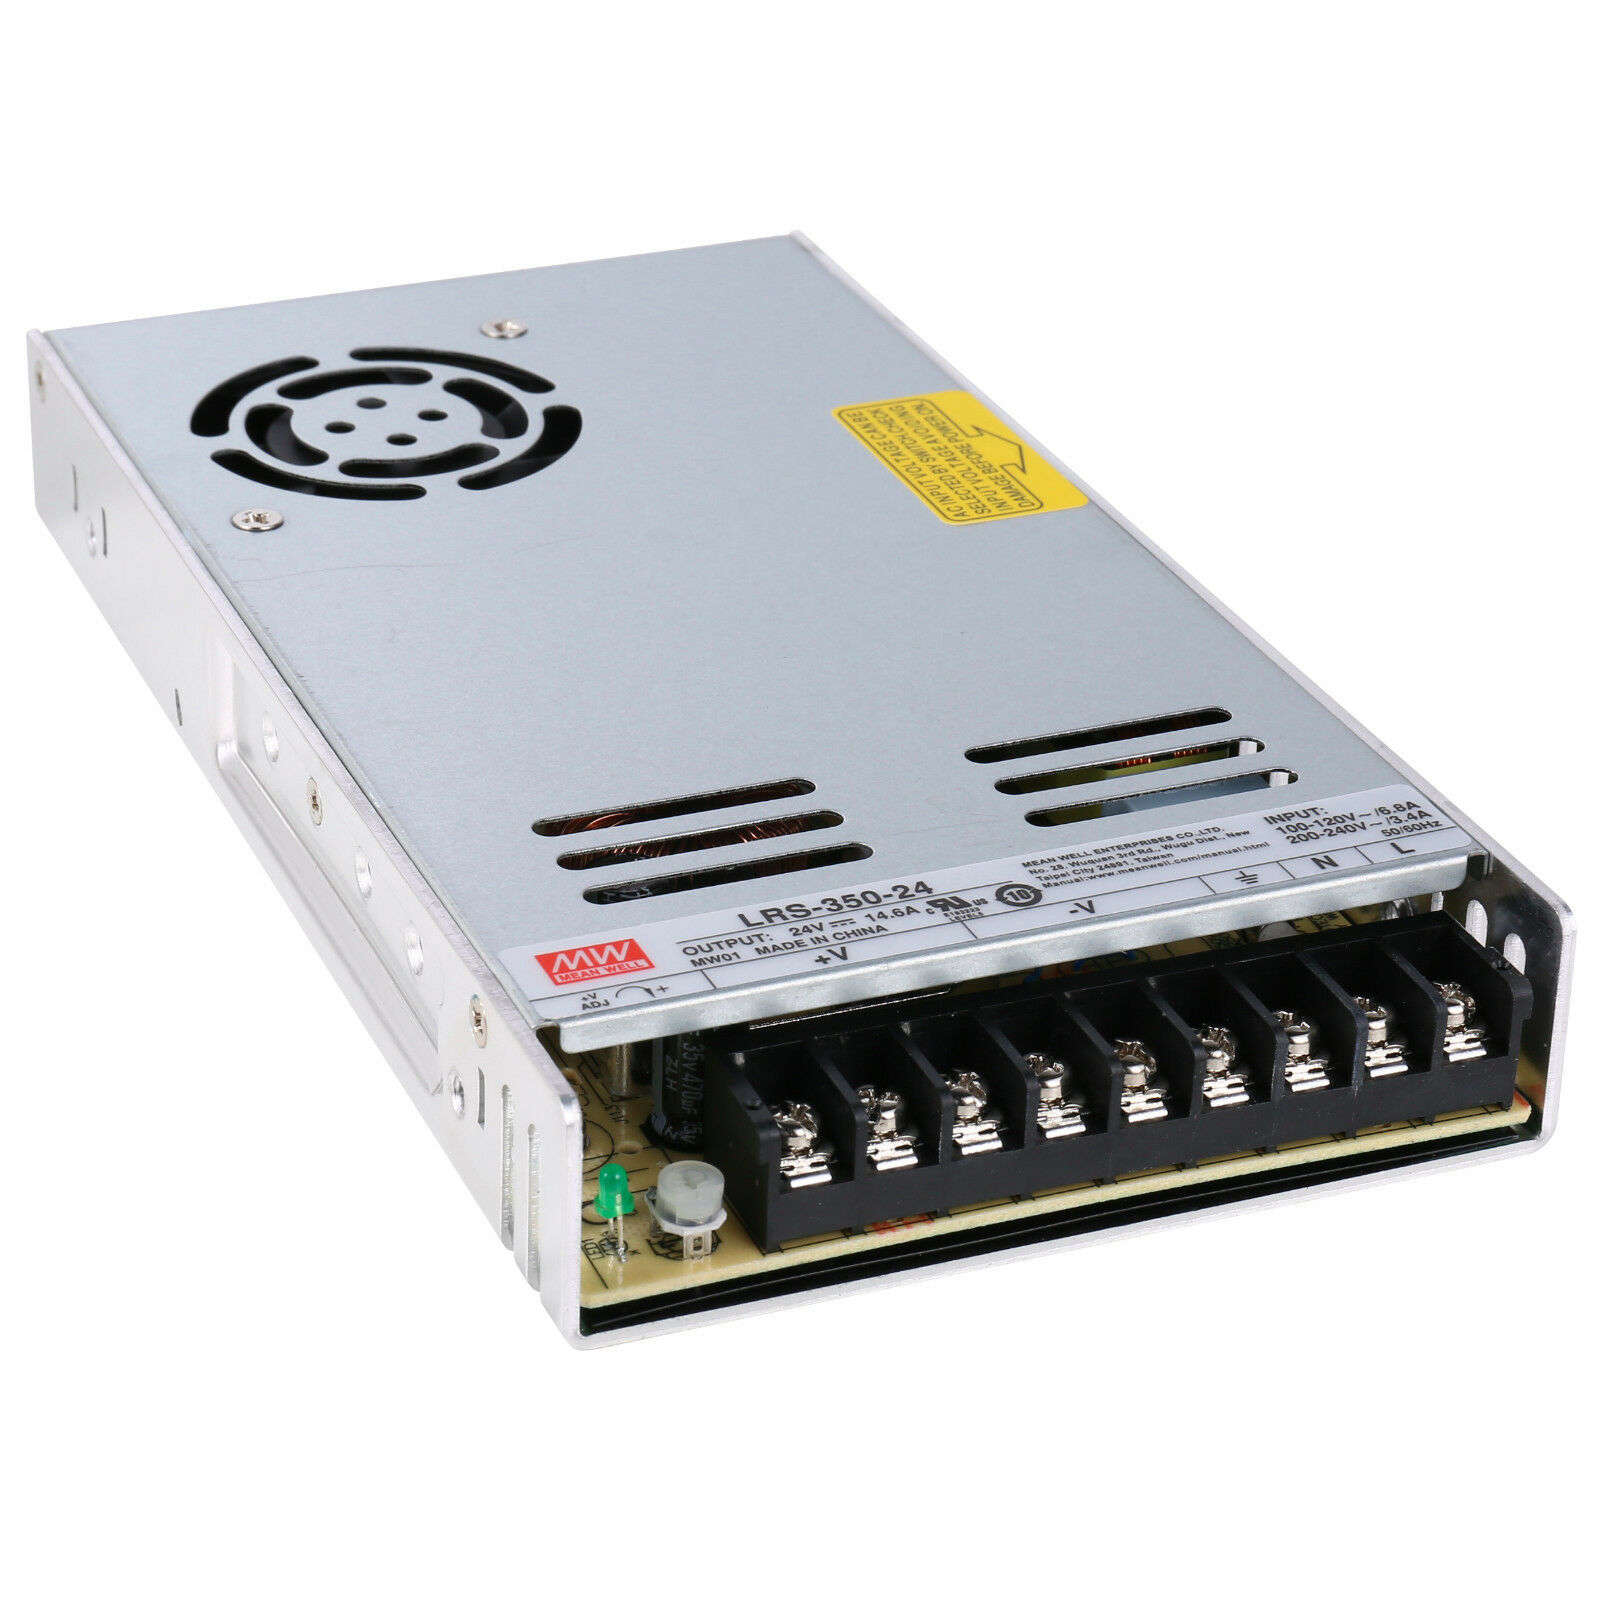 MeanWell LRS-350 350W 350W 350W Enclosed Low Profile Single Output Switching Power Supply 9ded6a